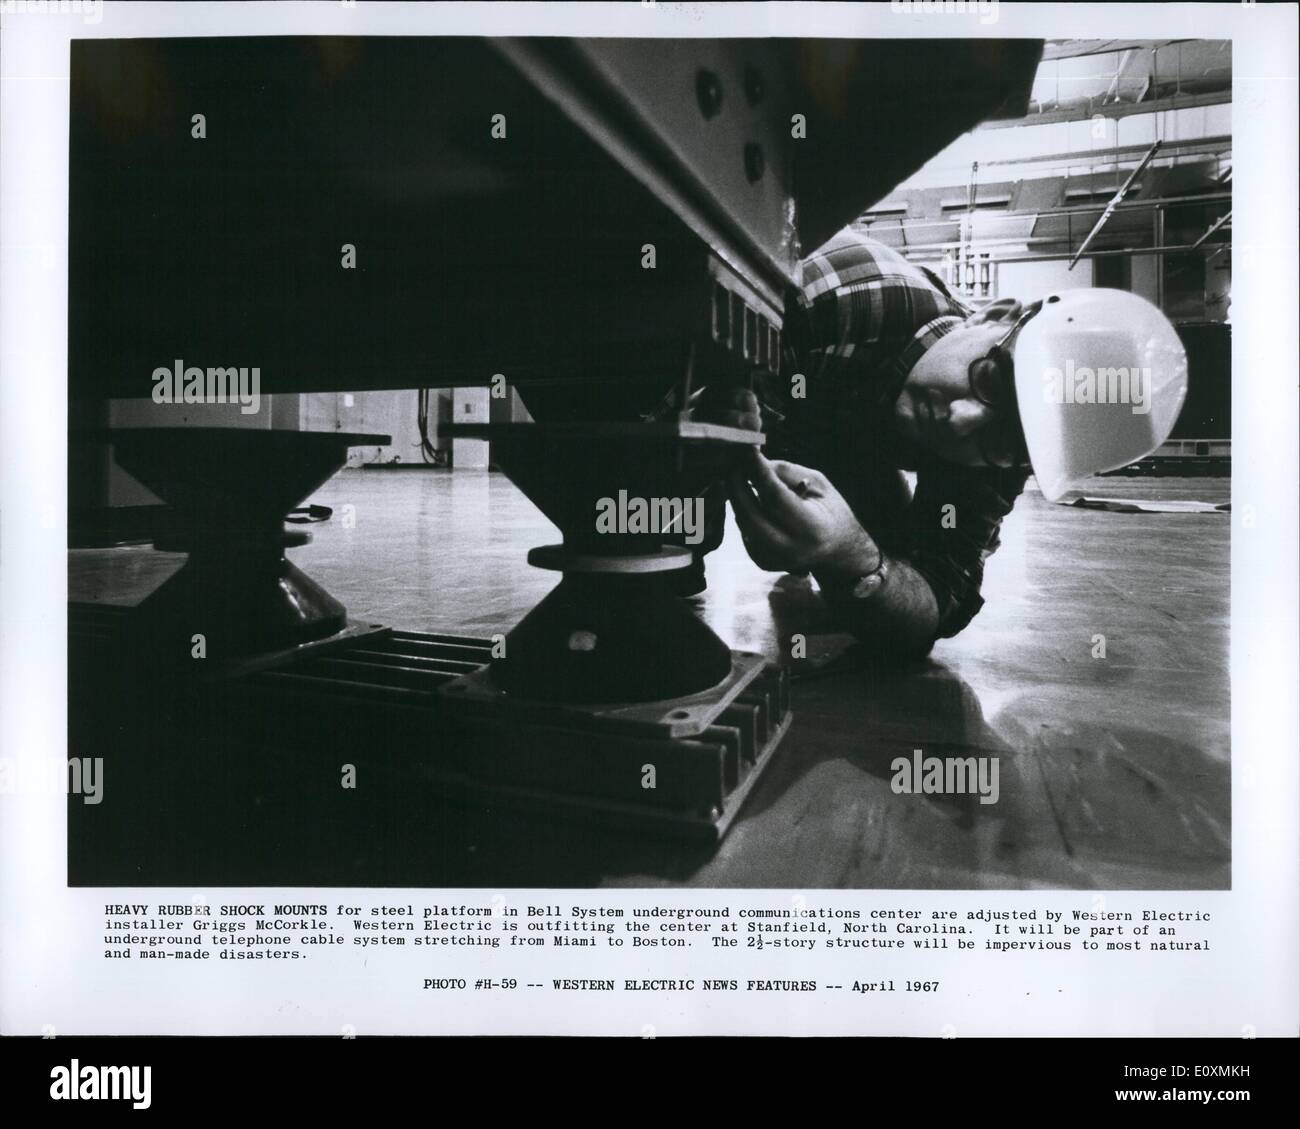 Apr. 04, 1967 - Heavy rubber shock mounts for steel platform in Bell System underground communication center are - Stock Image